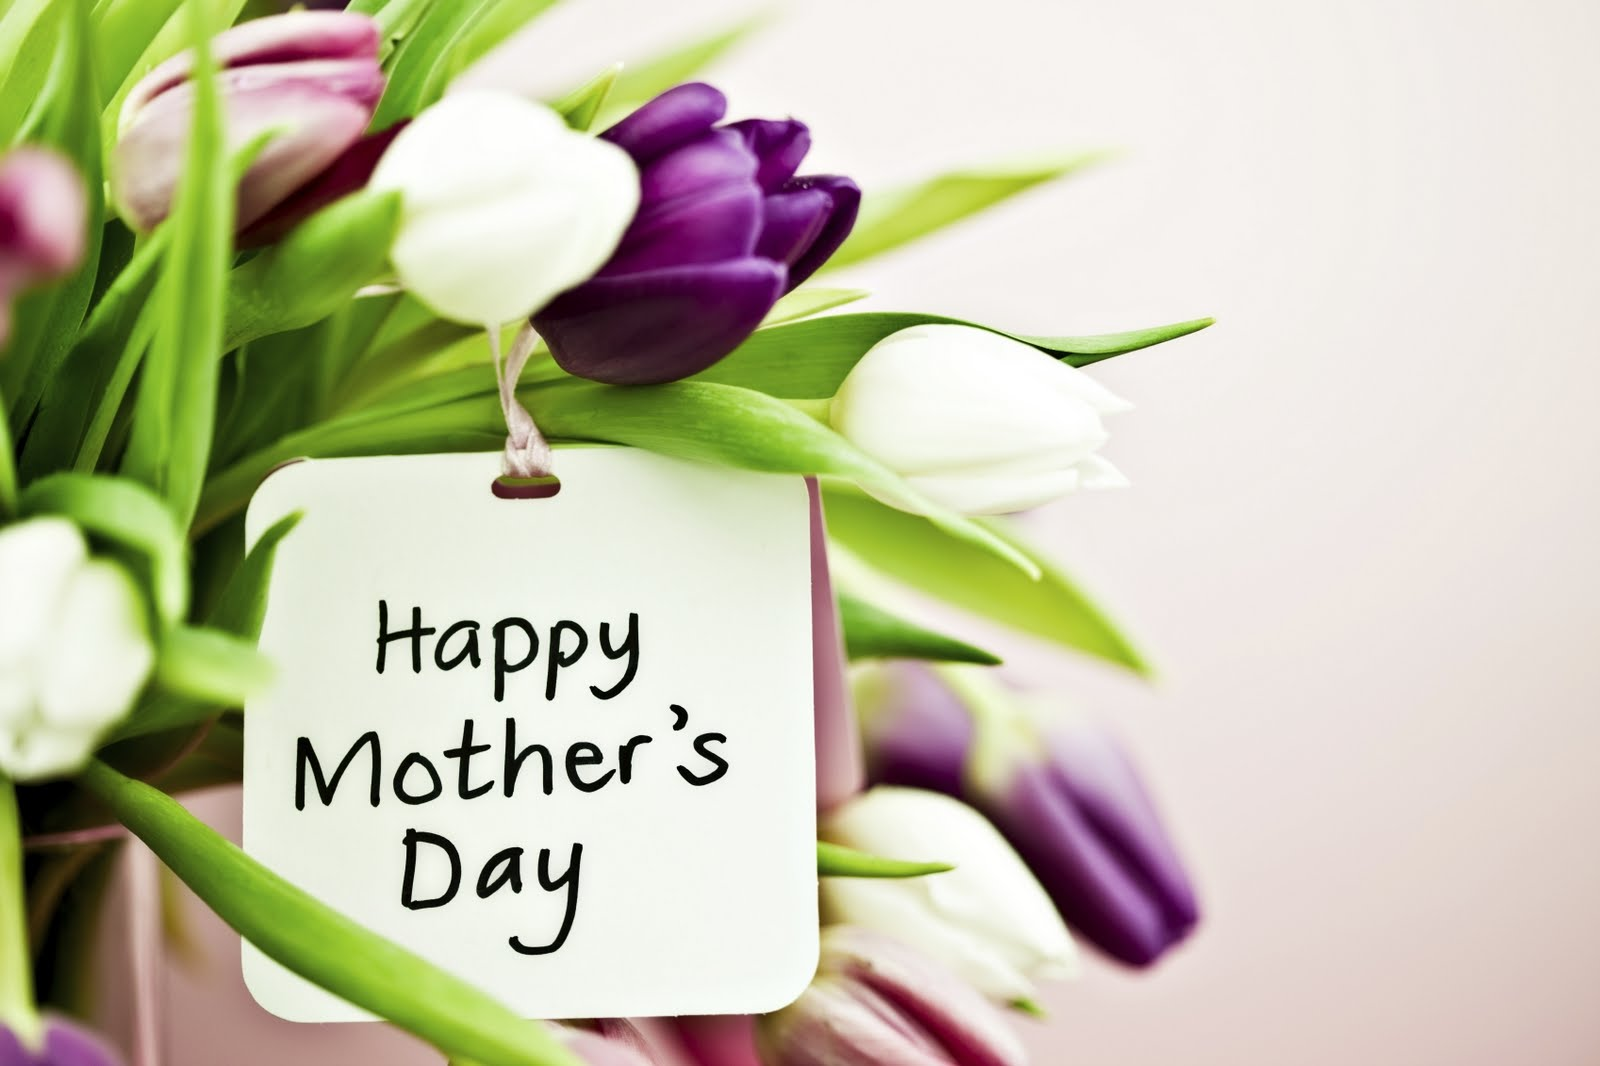 S Mothers Day Imaximage: Mother's Da...